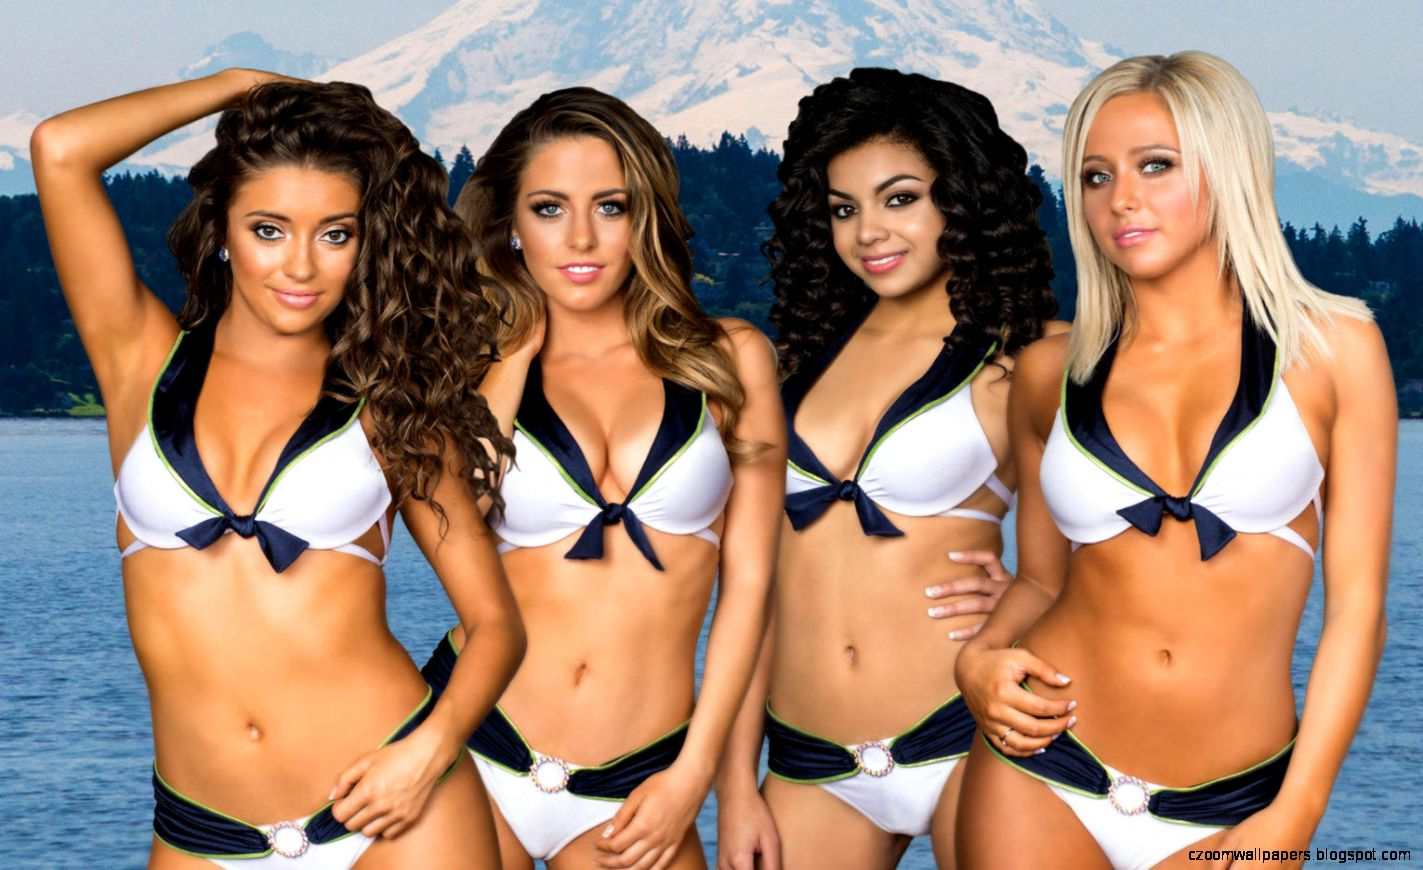 Seattle Seahawks Cheerleaders Swimsuit